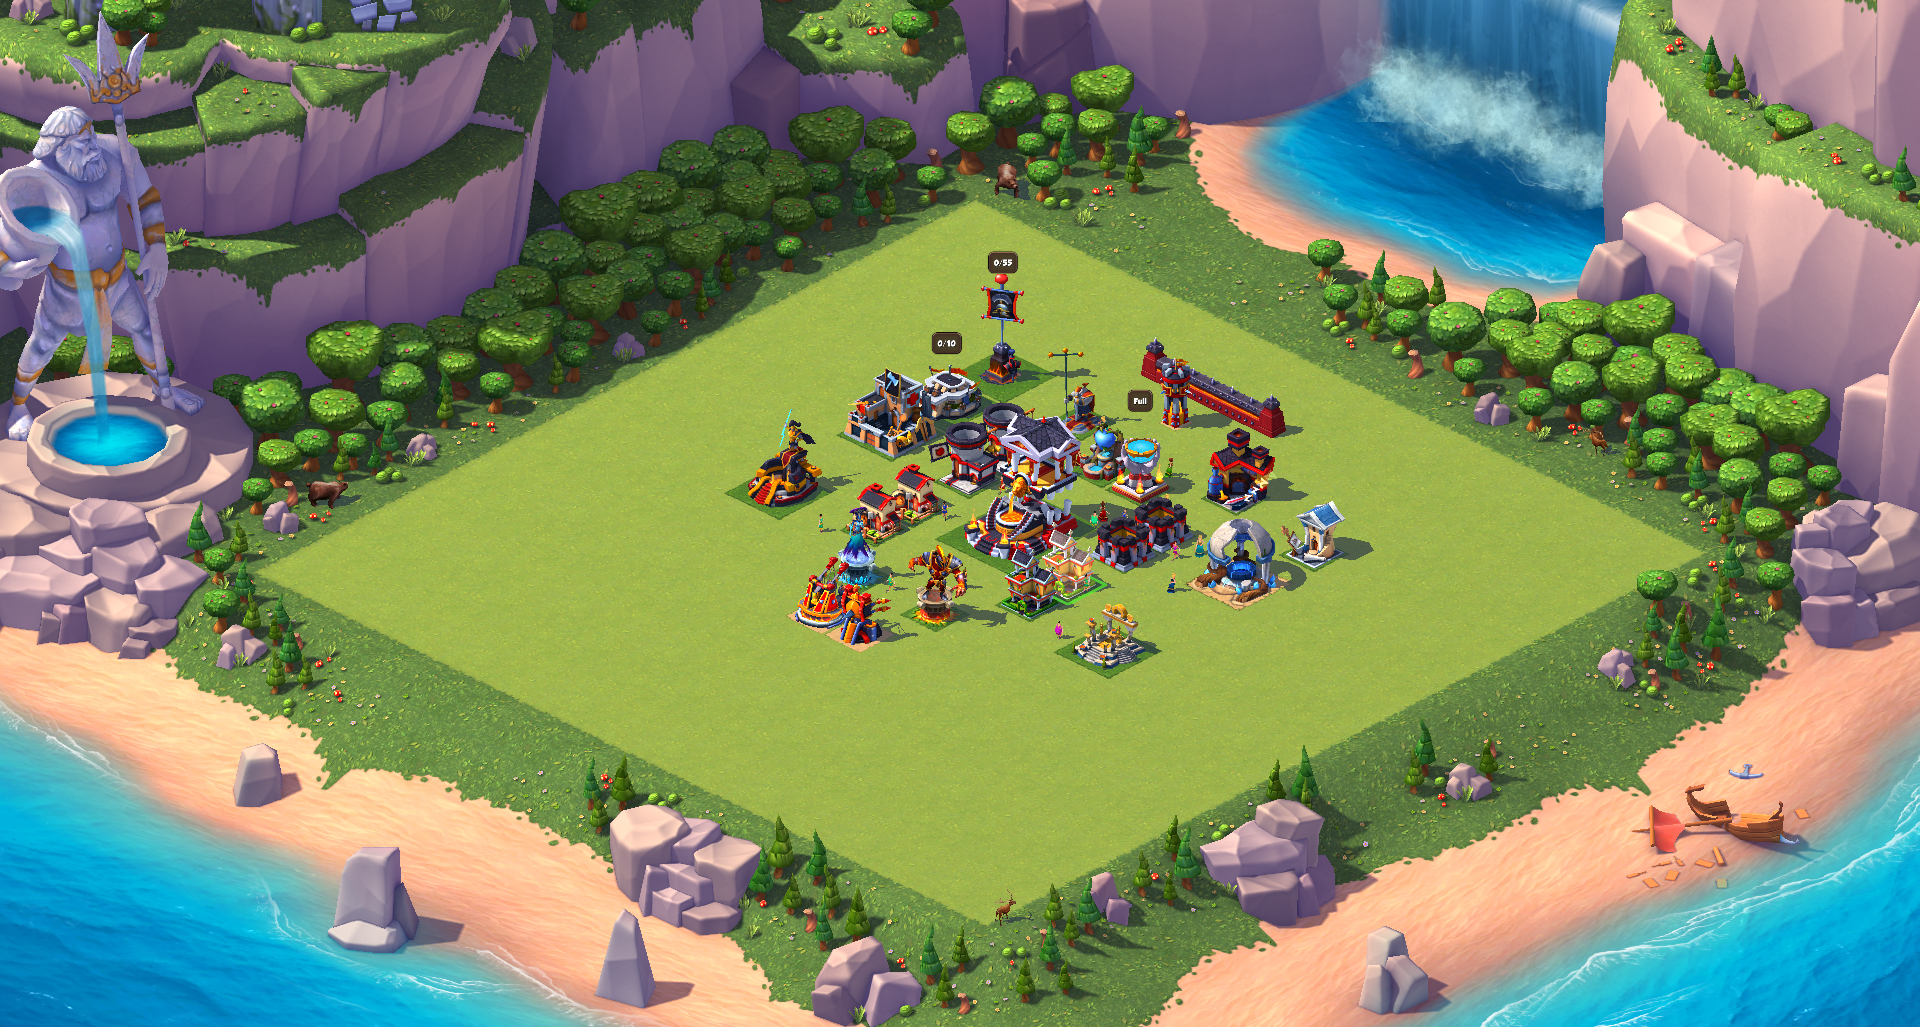 Total Conquest - Online combat and strategy game